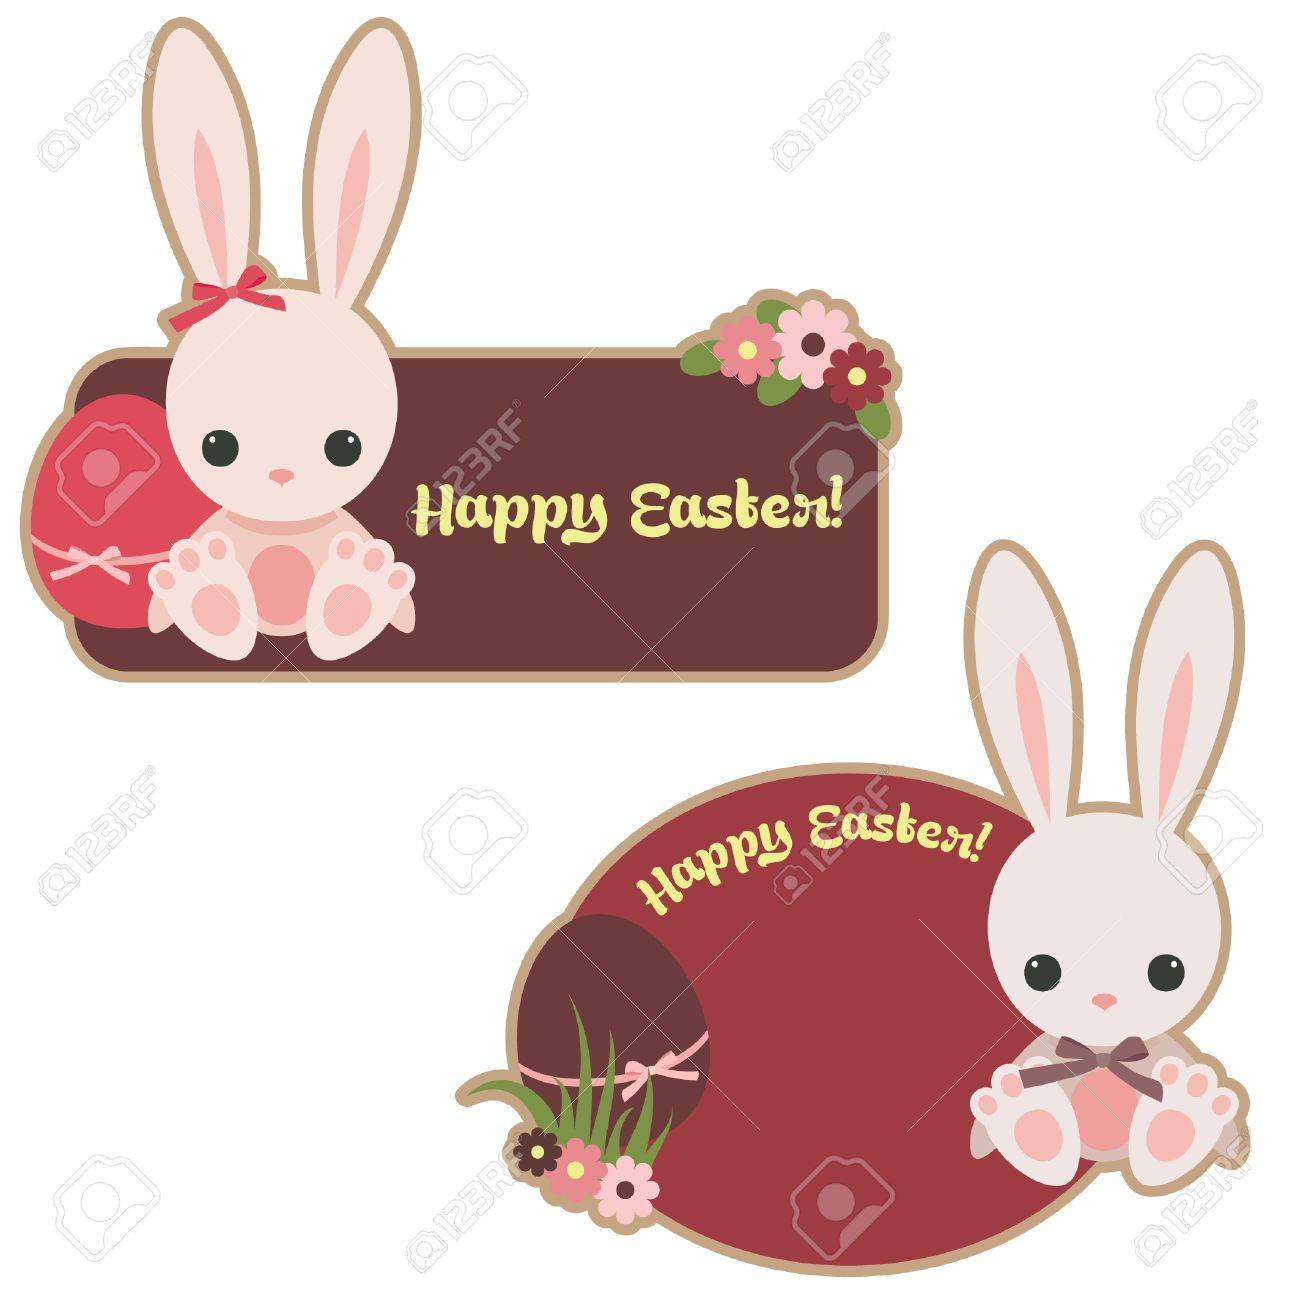 Easter Stickers With Bunnies And Eggs Royalty Free Cliparts ...